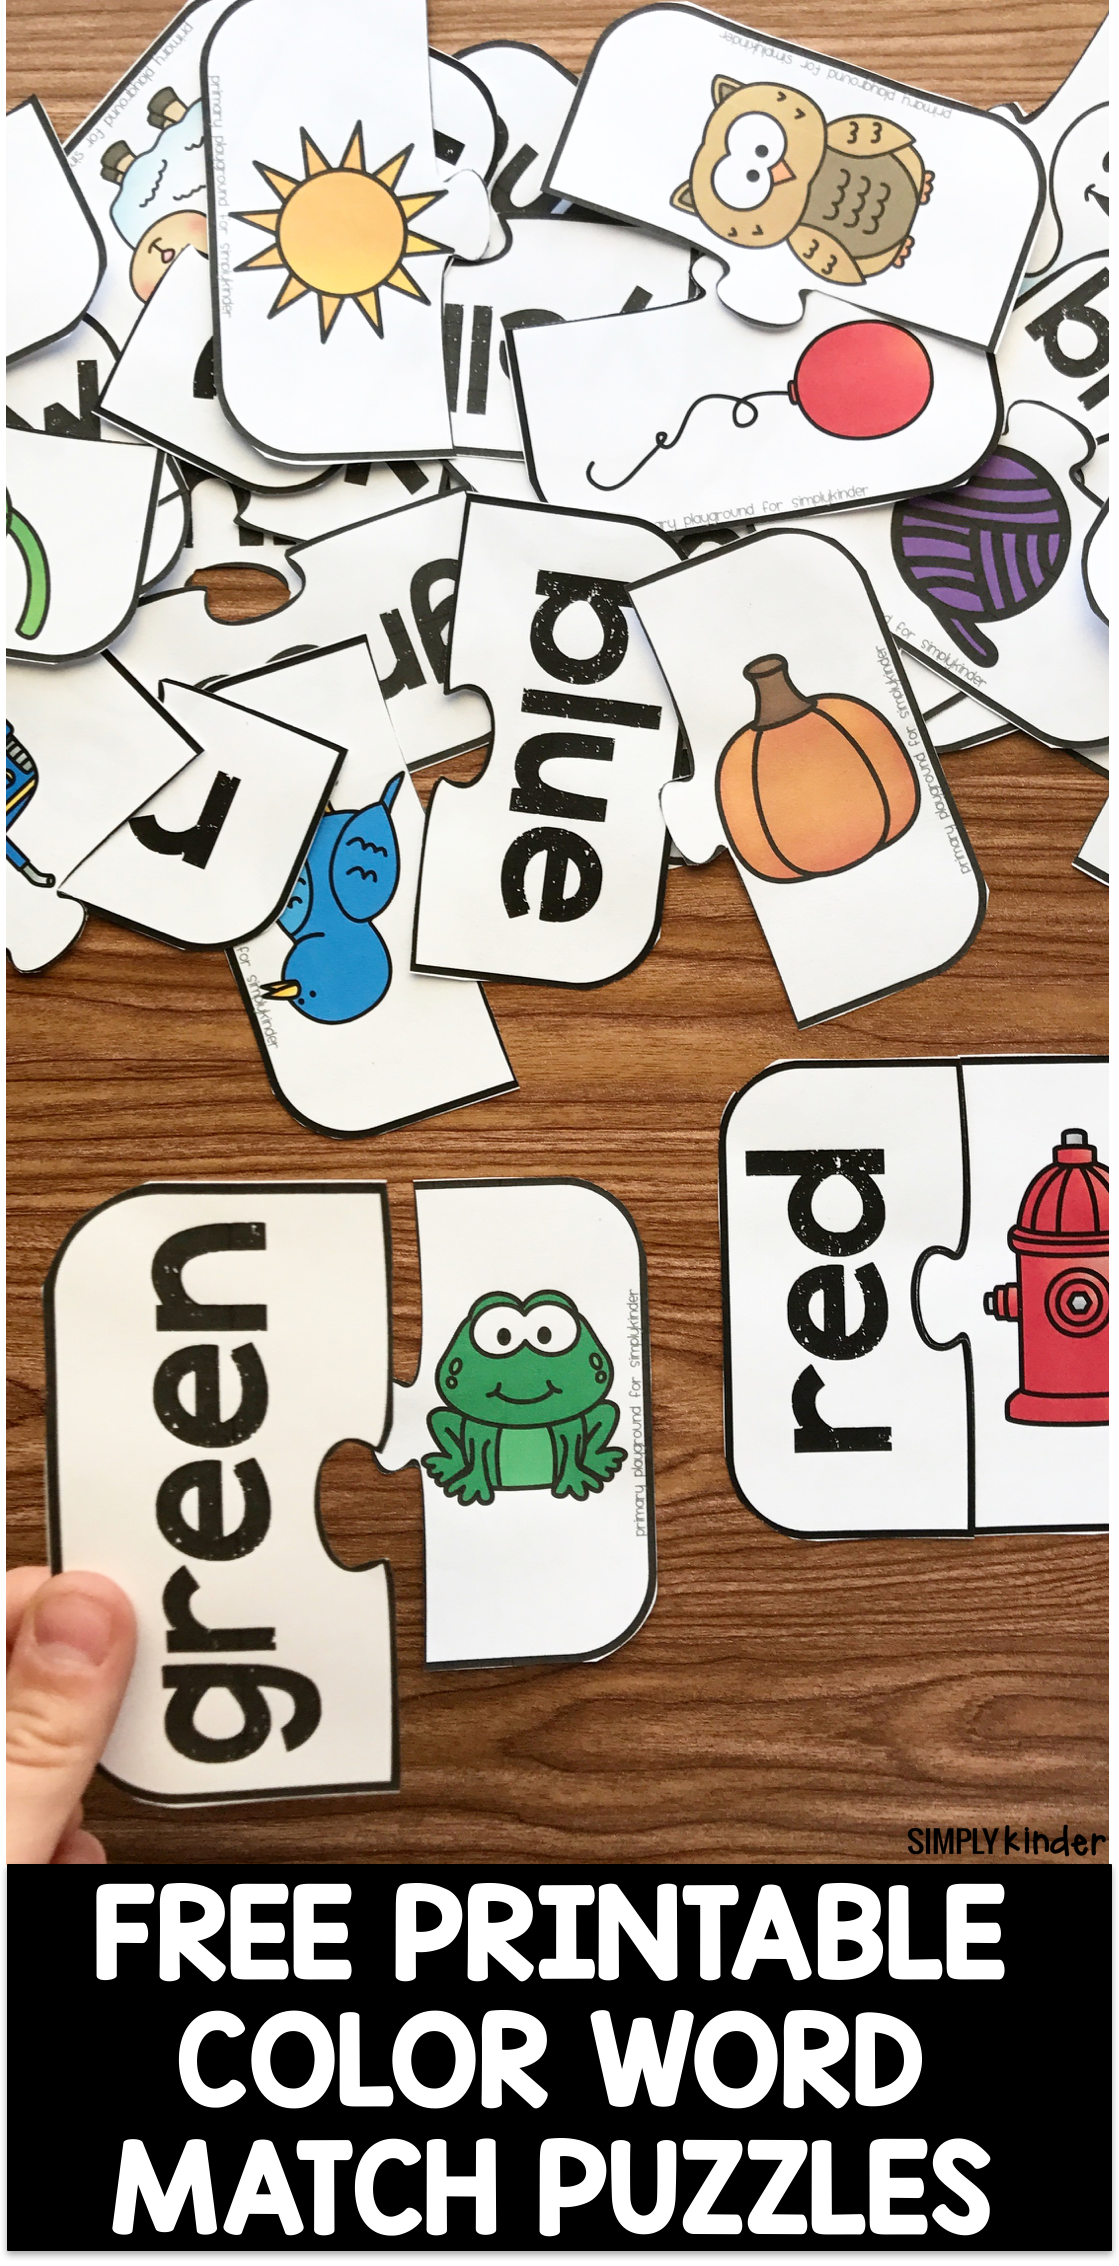 Free Printable Color Word Match Puzzles